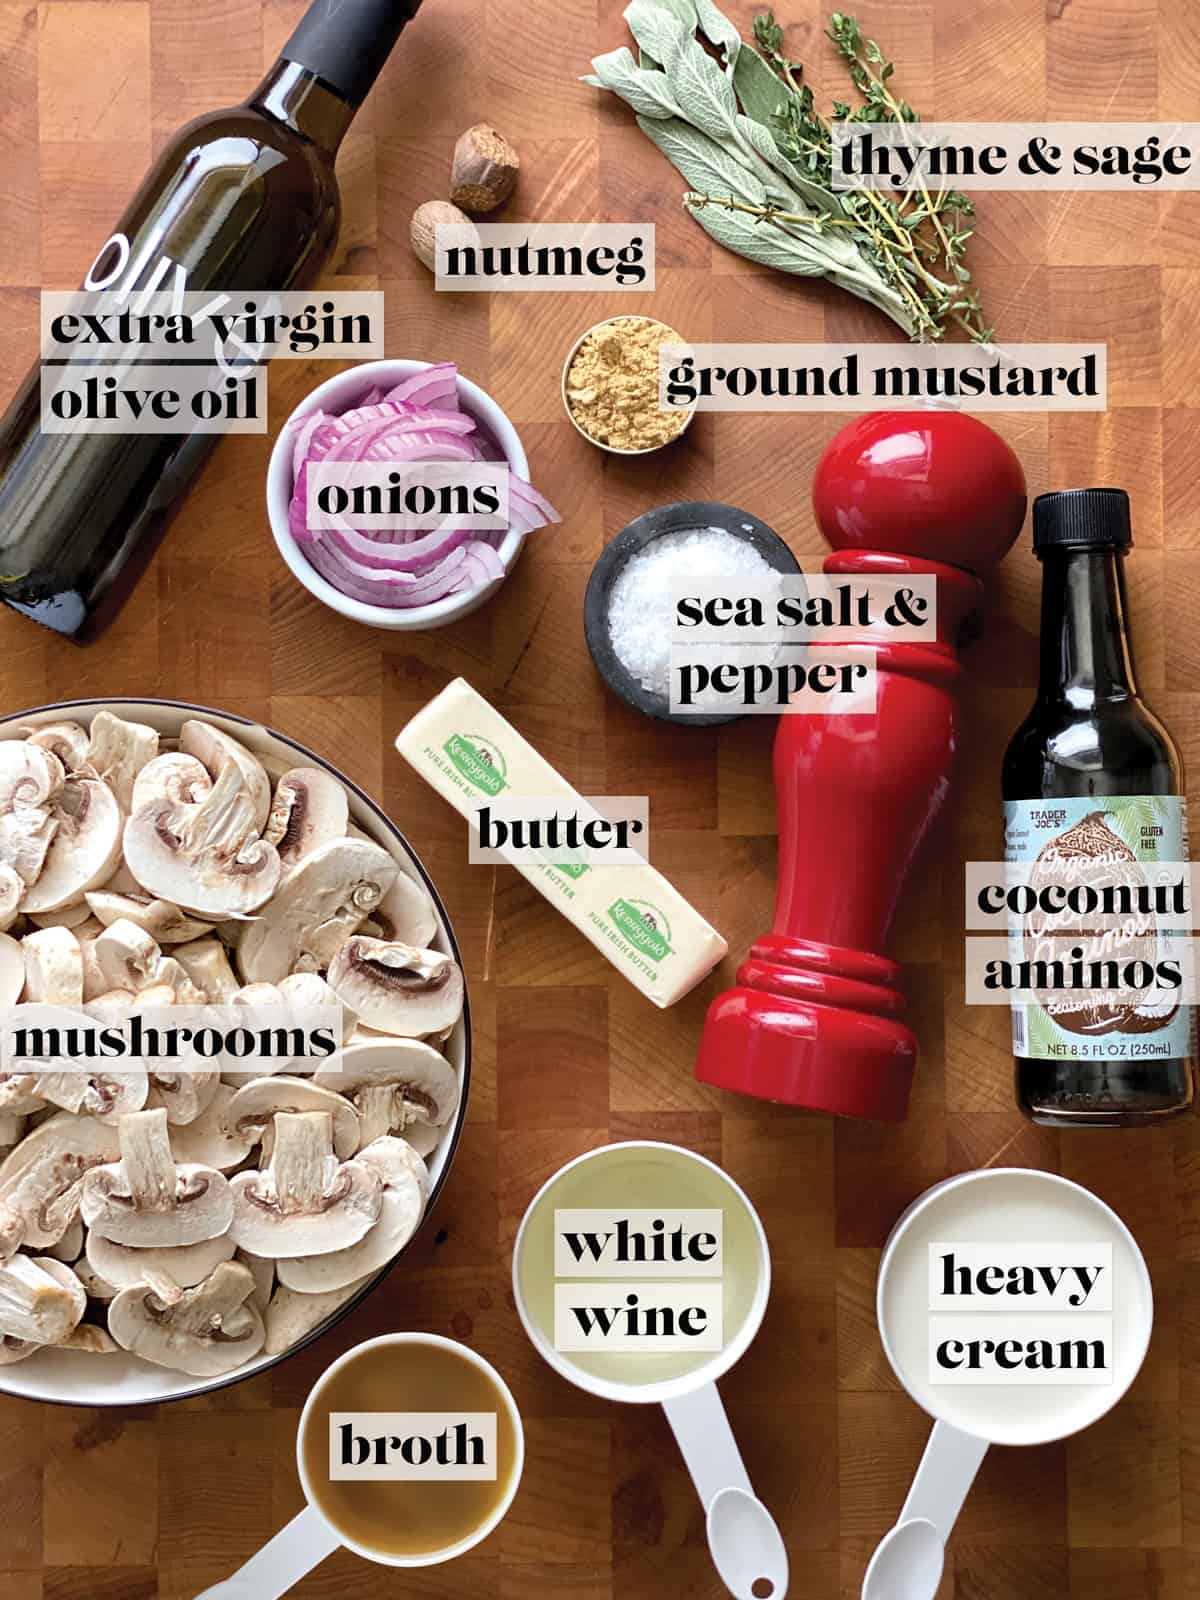 Ingredients for mushroom sauce.  A bowl of mushrooms, a stick of butter, a bottle of extra virgin olive oil, a cup with white wine, a cup of heavy cream, a small cup with ground mustard and nutmeg, a bottle of coconut aminos, fresh herbs like thyme leaves, some sea salt and freshly ground pepper on a butcher block.